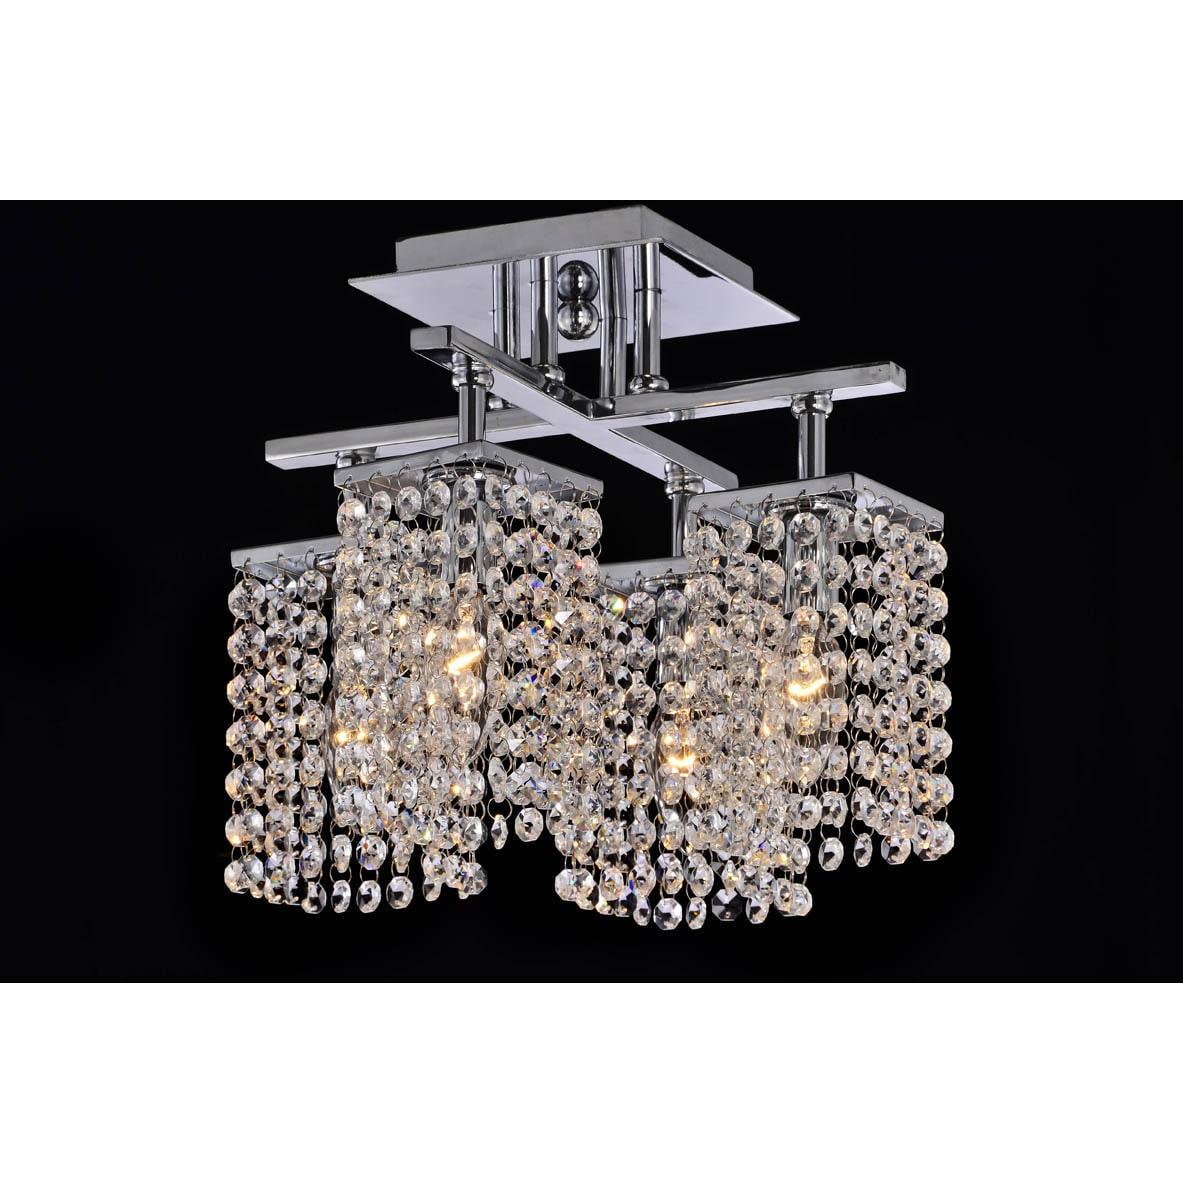 4-light Chrome and Crystal Ceiling Chandelier